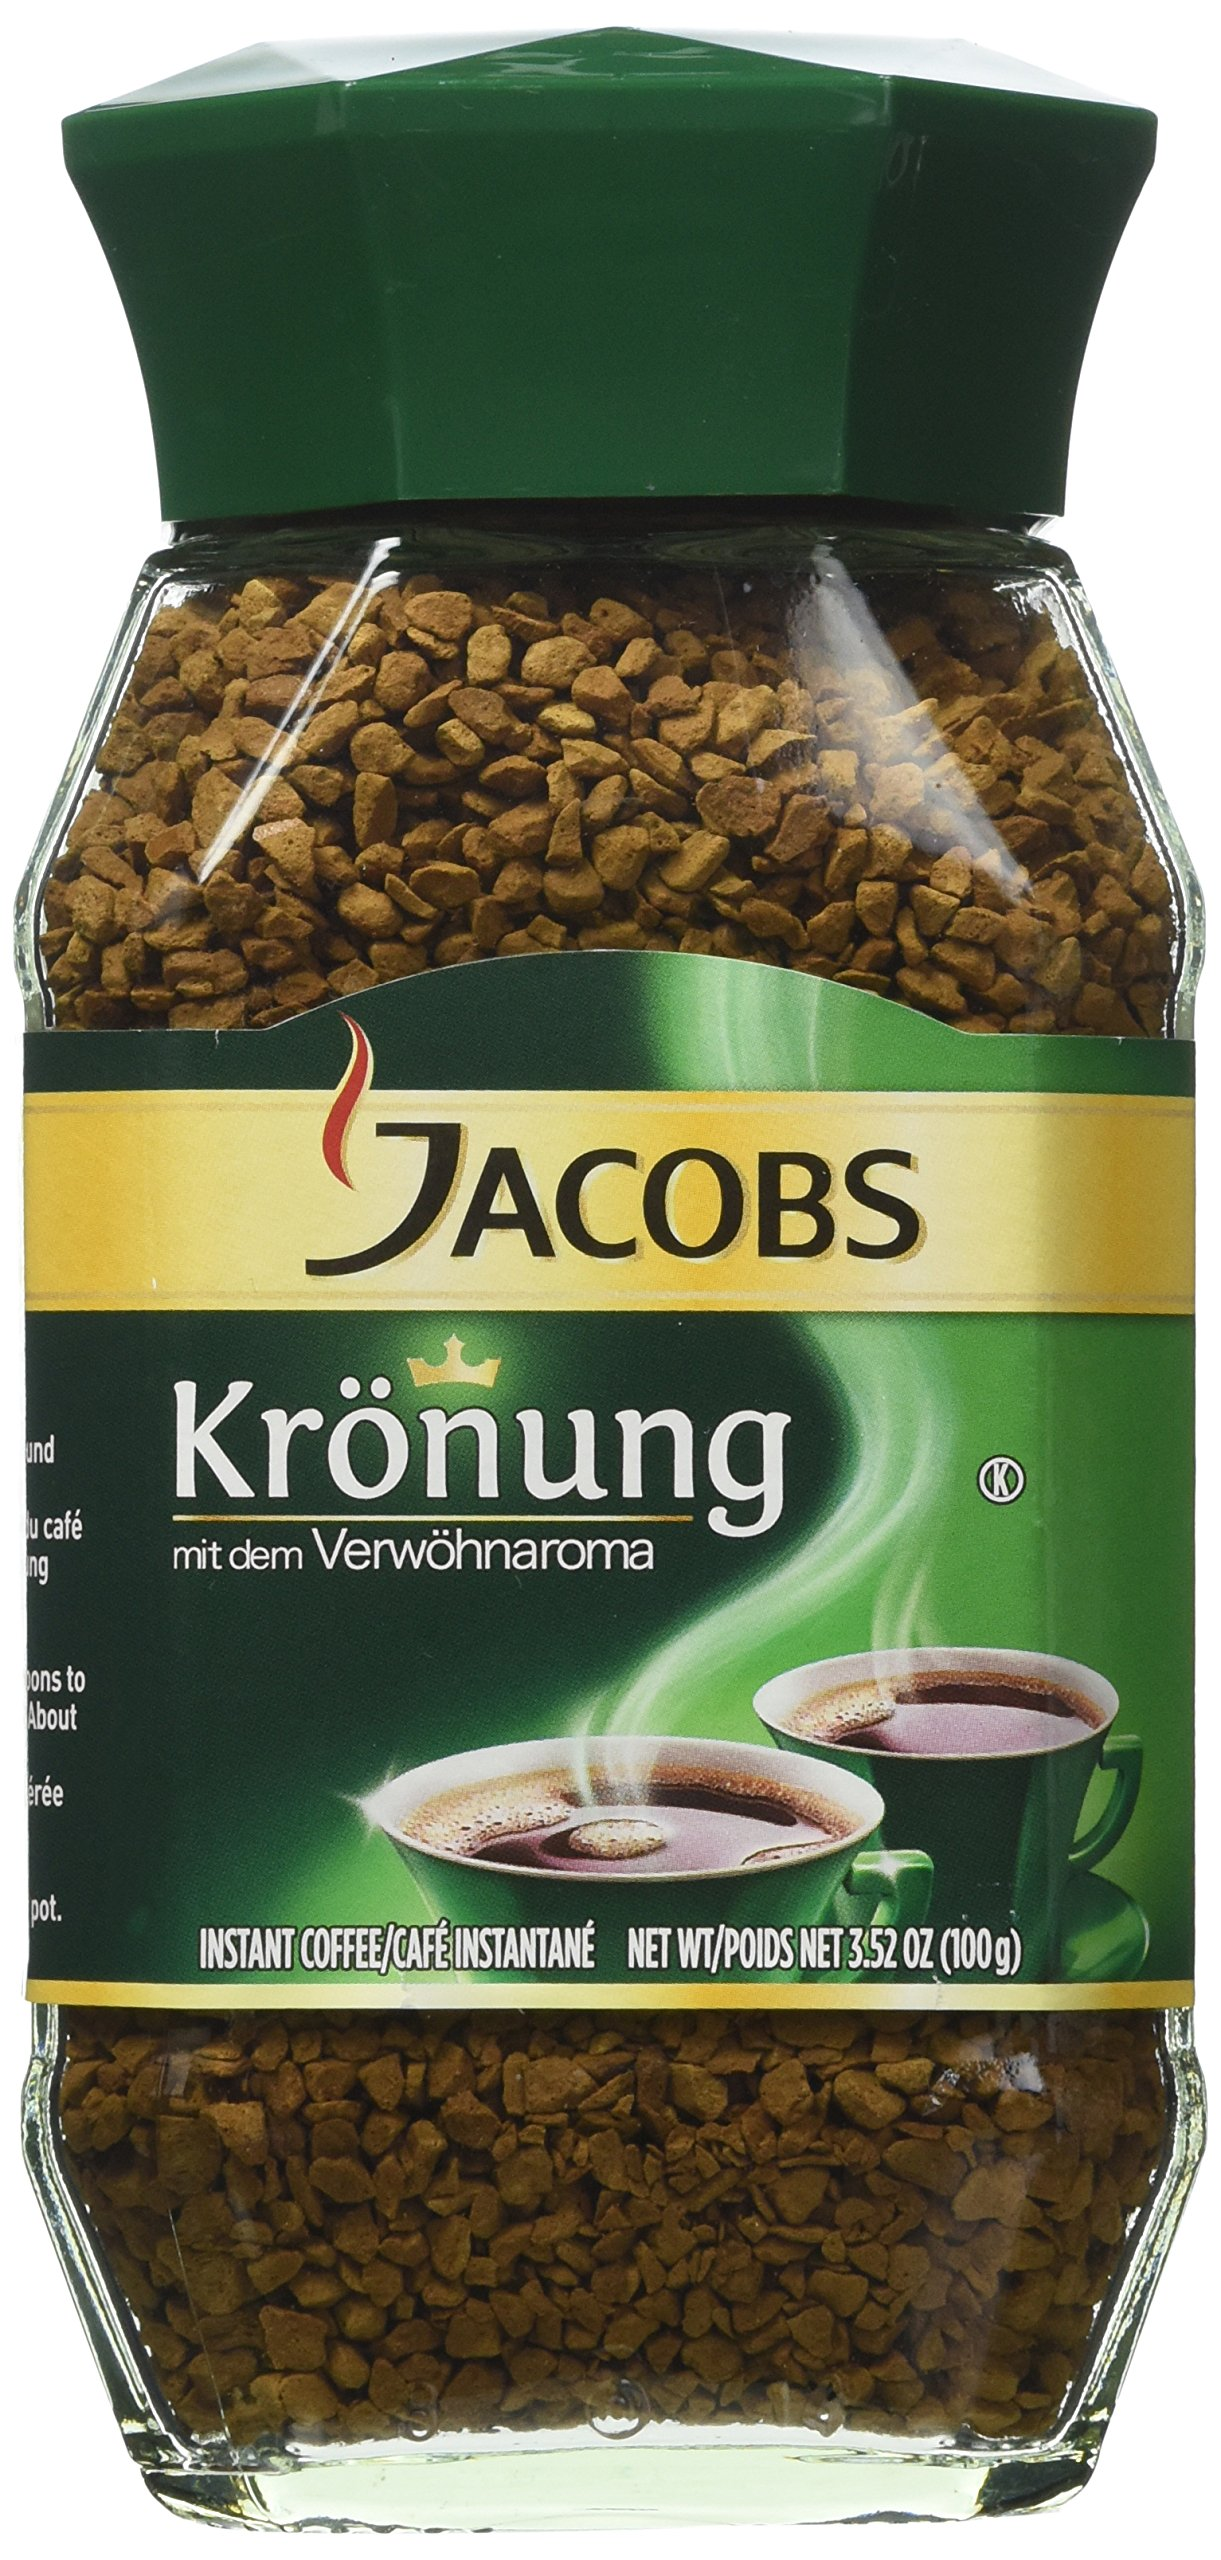 2 Pack of Jacobs Kronung Instant Coffee 3.5oz/100g by Jacob's Coffee